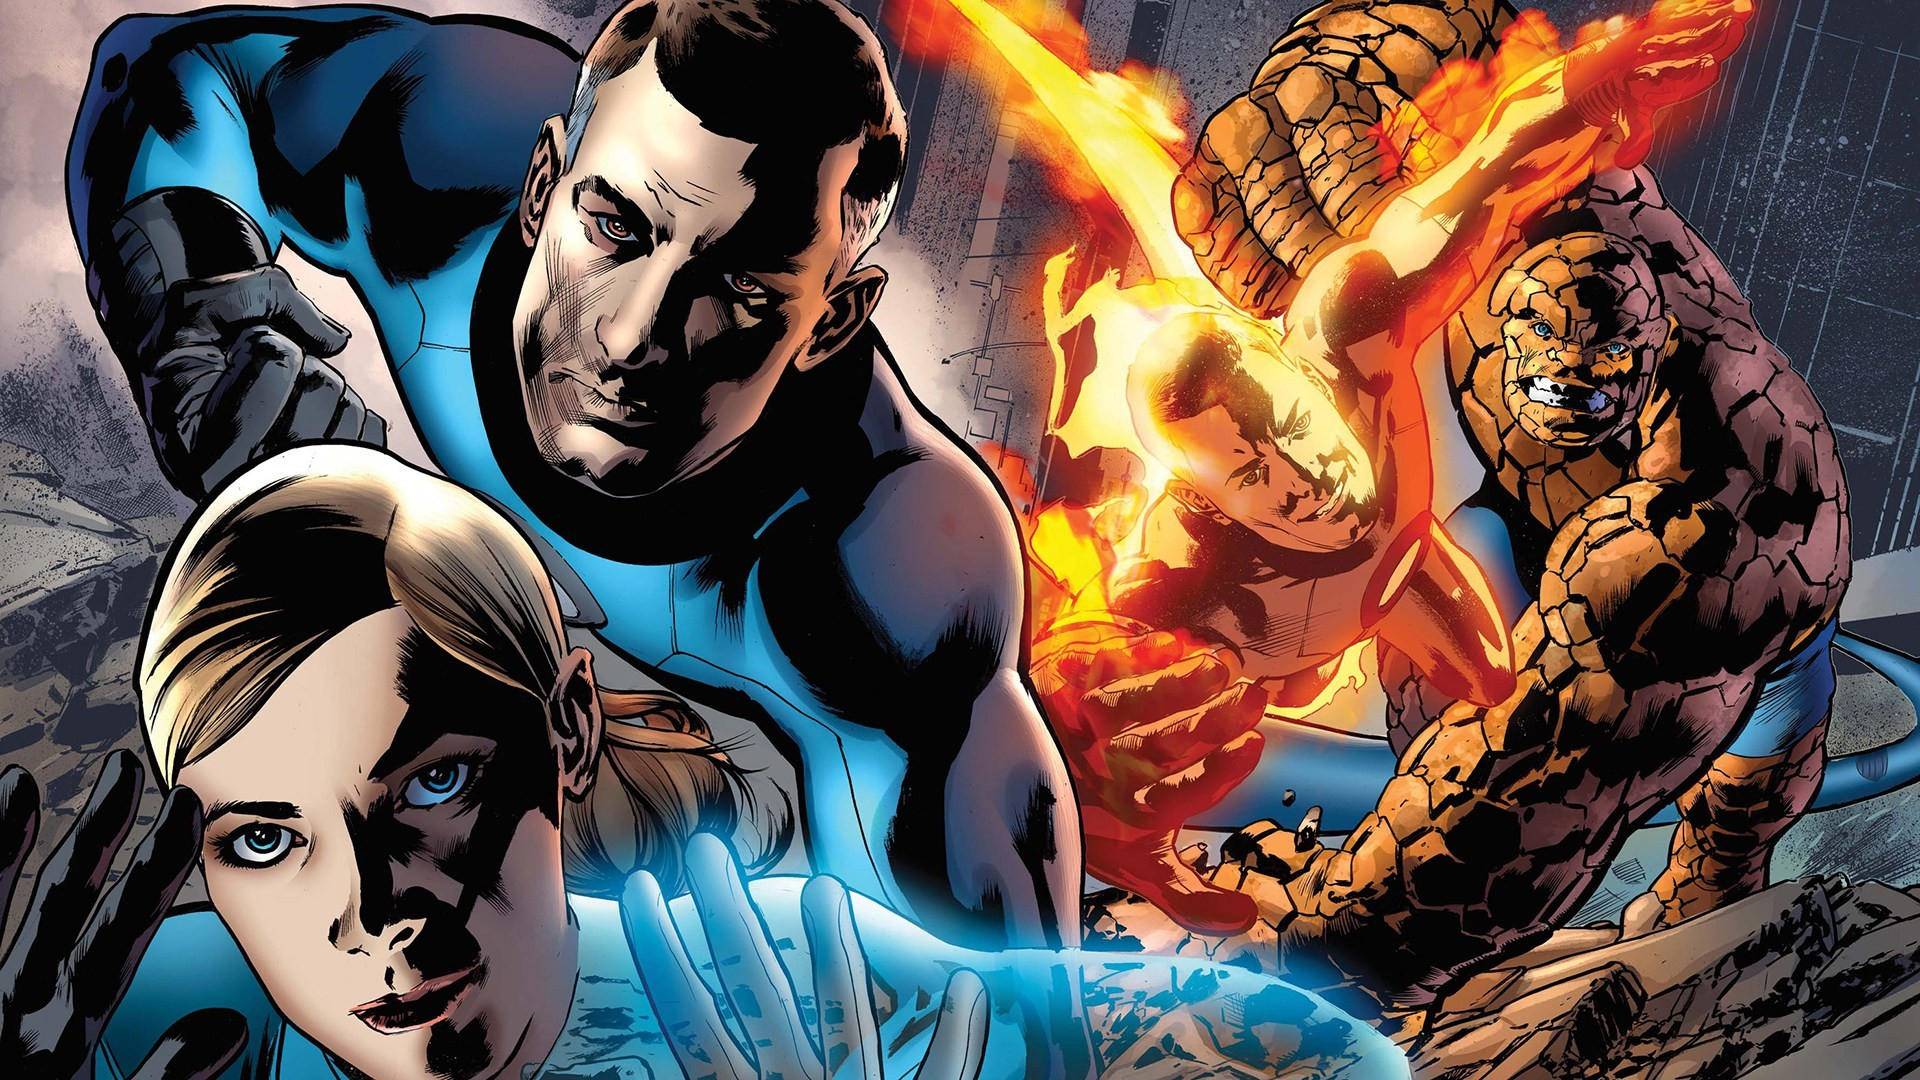 Res: 1920x1080, The Thing (Benjamin Grimm) Superhero Mister Fantastic (Reed Richards)  Marvel Invisible Woman